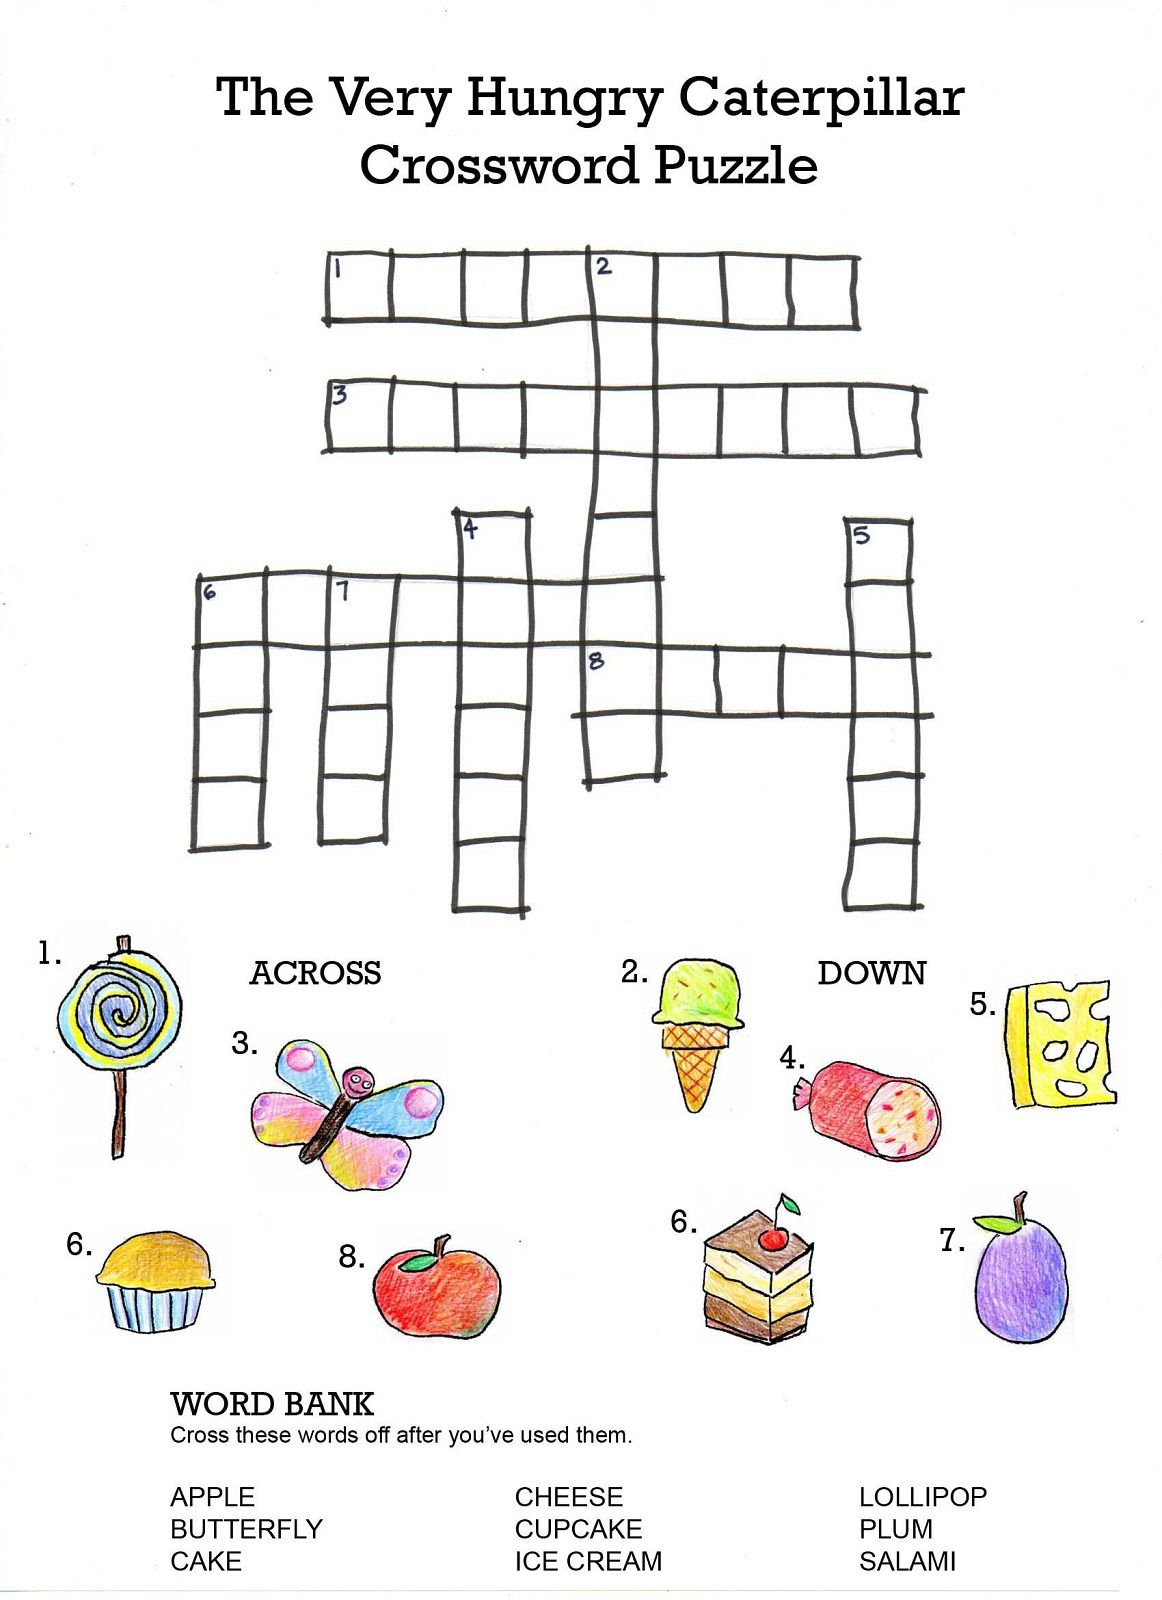 Crossword To Practice. Food | Storybook Activities | Hungry - Printable Crossword Puzzles For Kids With Word Bank